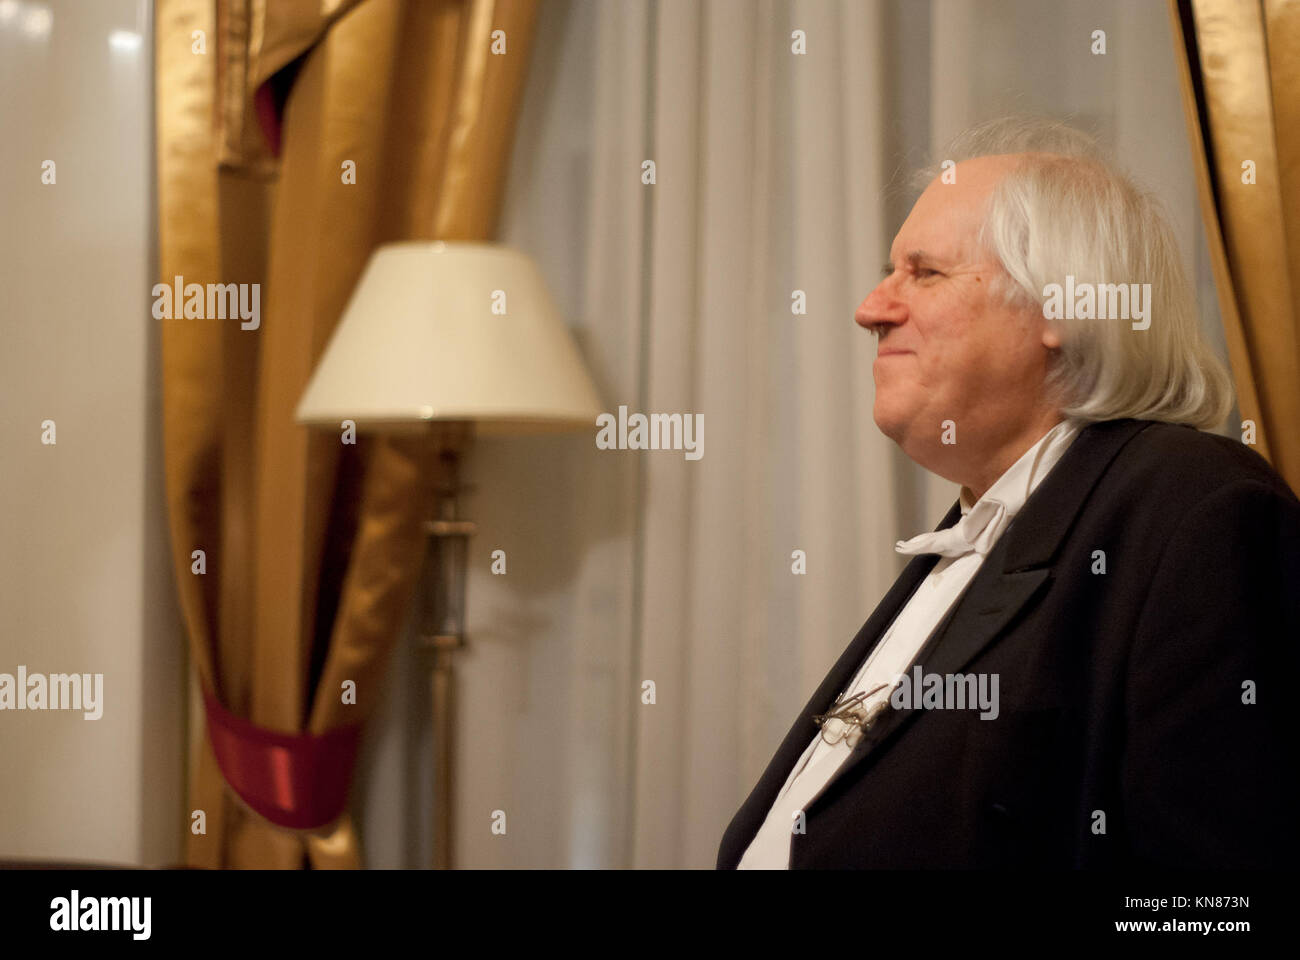 Warsaw, Poland. 10th Dec, 2017. Recognized as a the best living pianist - Grigory Sokolov is congratulated by his - Stock Image